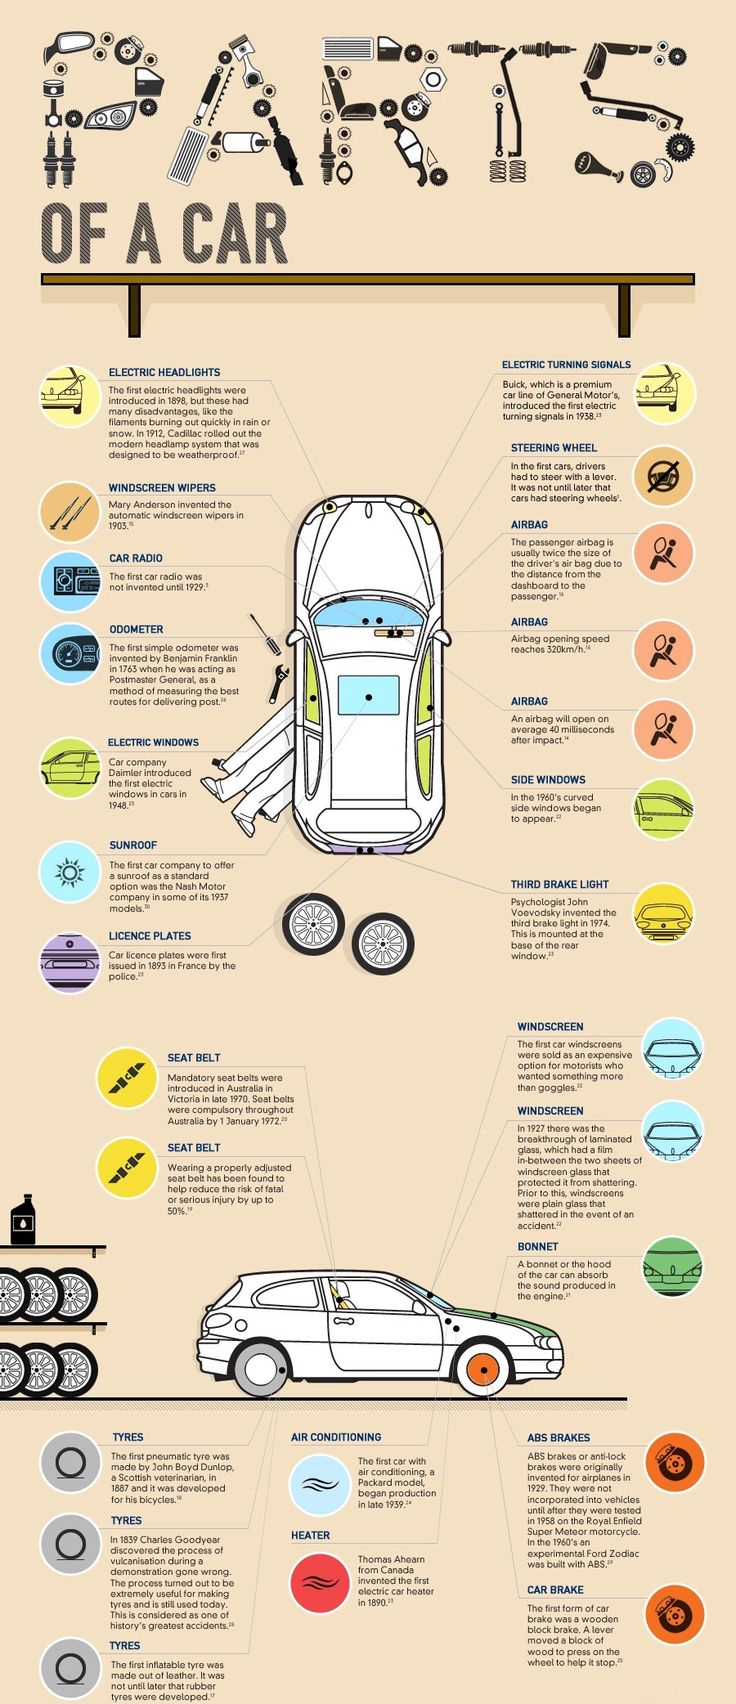 Repairing your vehicle is certainly cost effective. But before you decide to turn into an auto mechanic, you need to know your car like the back of your hand. Here is a vivid description on the parts of a car. Feel free to check out our blogspot for tutorials and steps on DIY repair jobs and shop at www.partsavatar.ca for every car part that you might need! #LifeInsuranceFactsTips